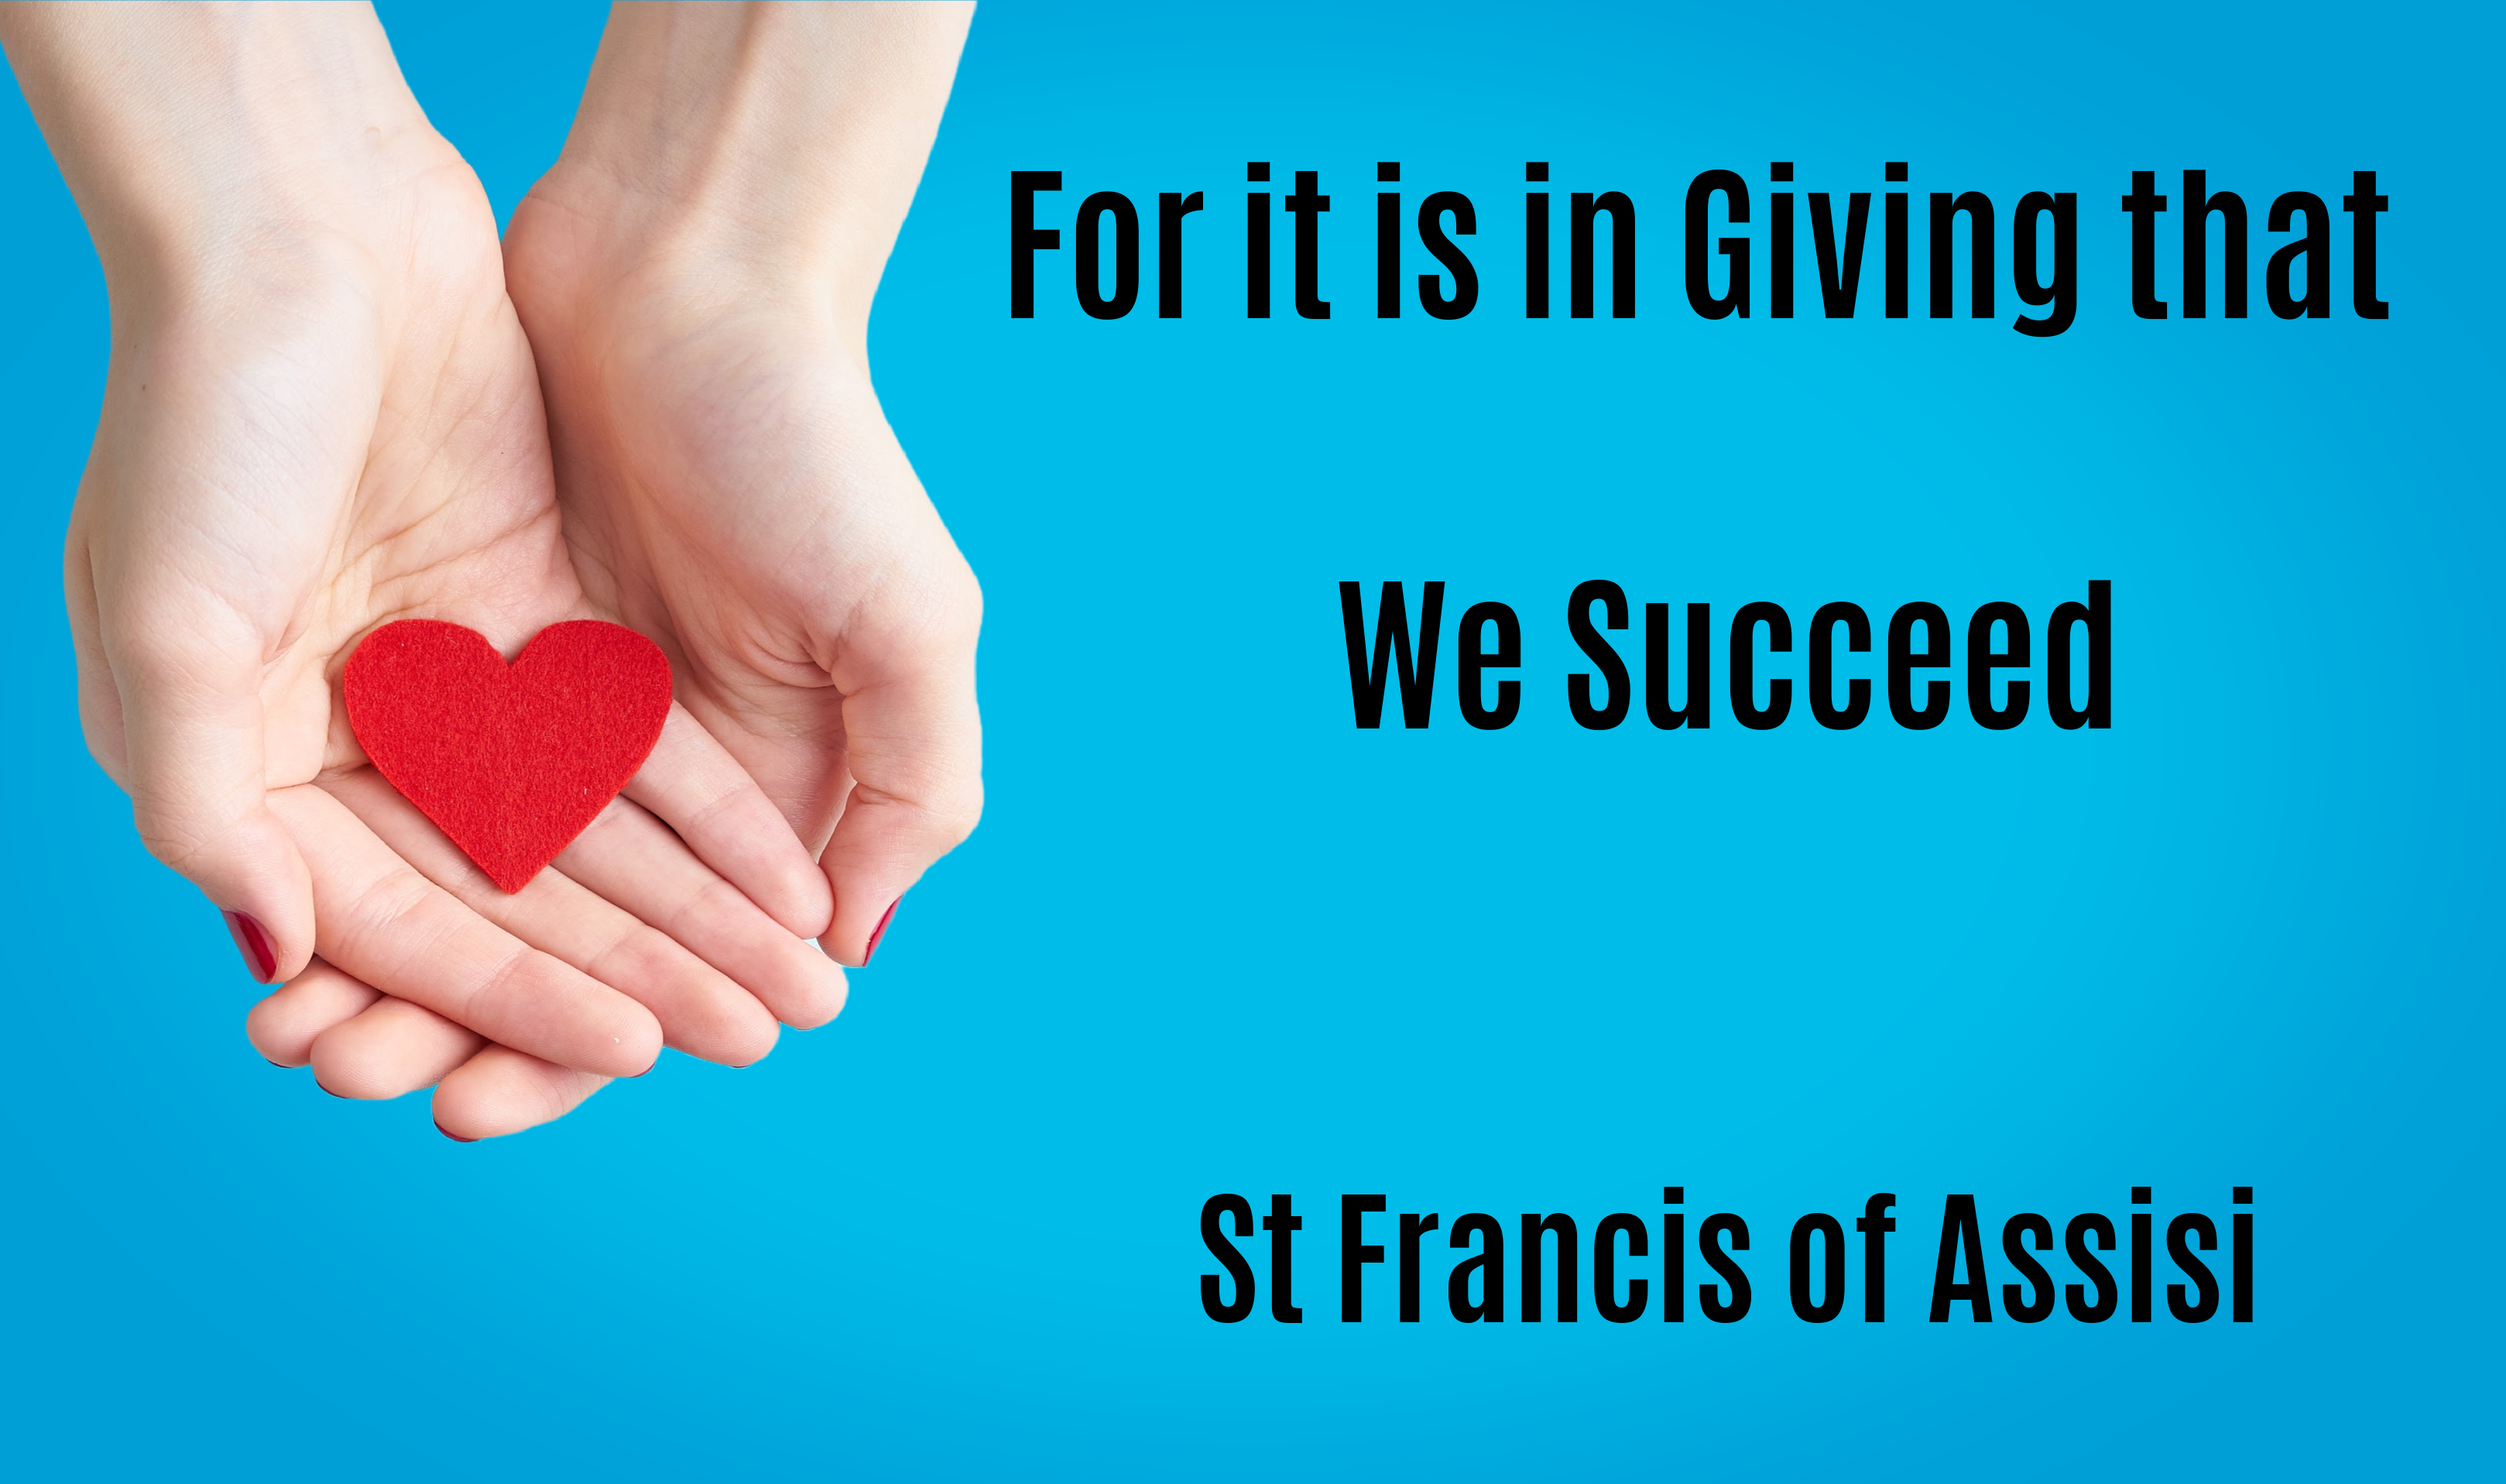 Quote from St Francis of Assisi